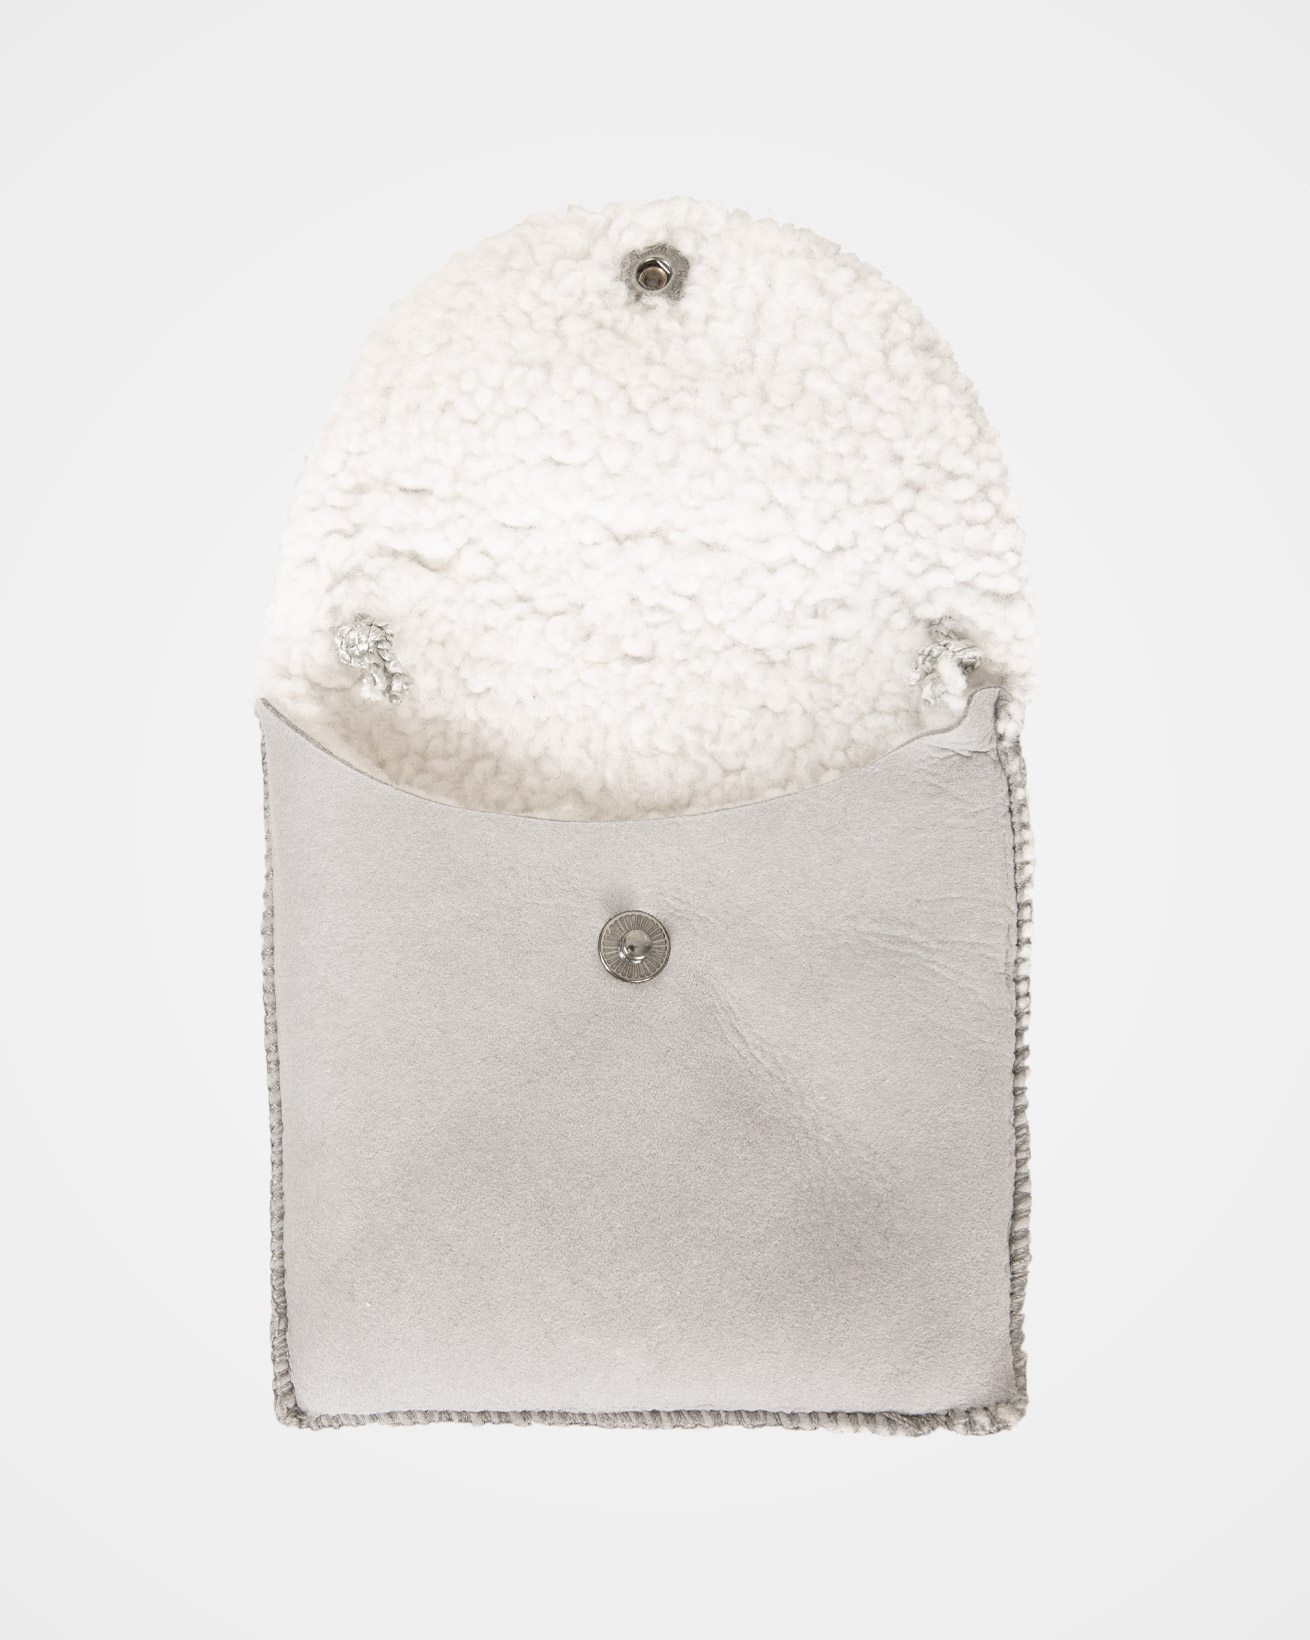 4222_sheepskin-purse_light-grey_inside.jpg